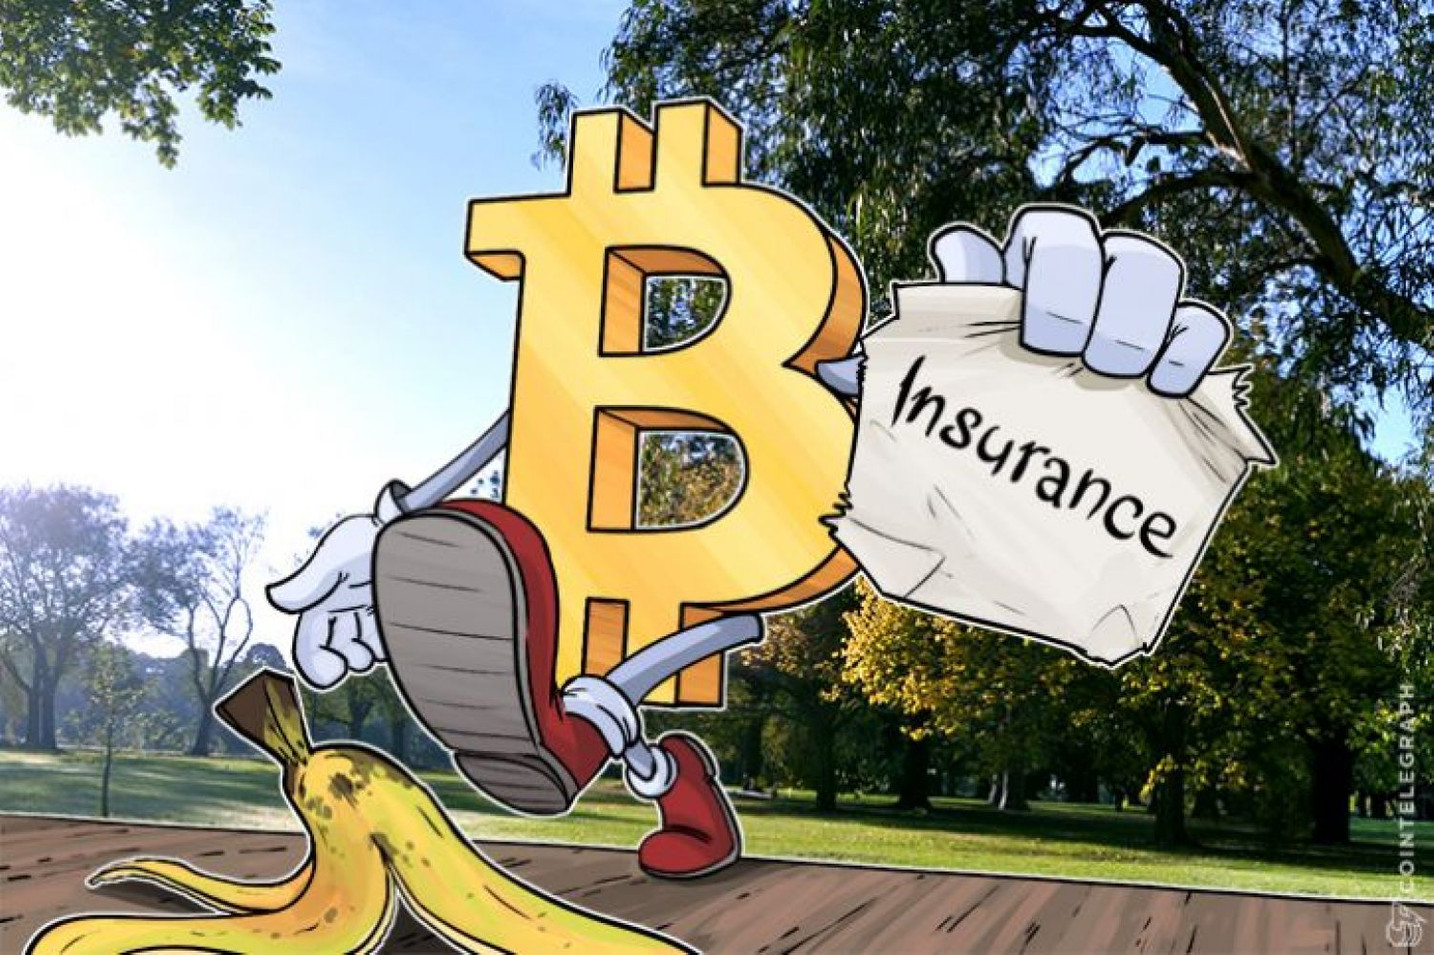 AIG Issues First Insurance Policy Based on Blockchain Technology